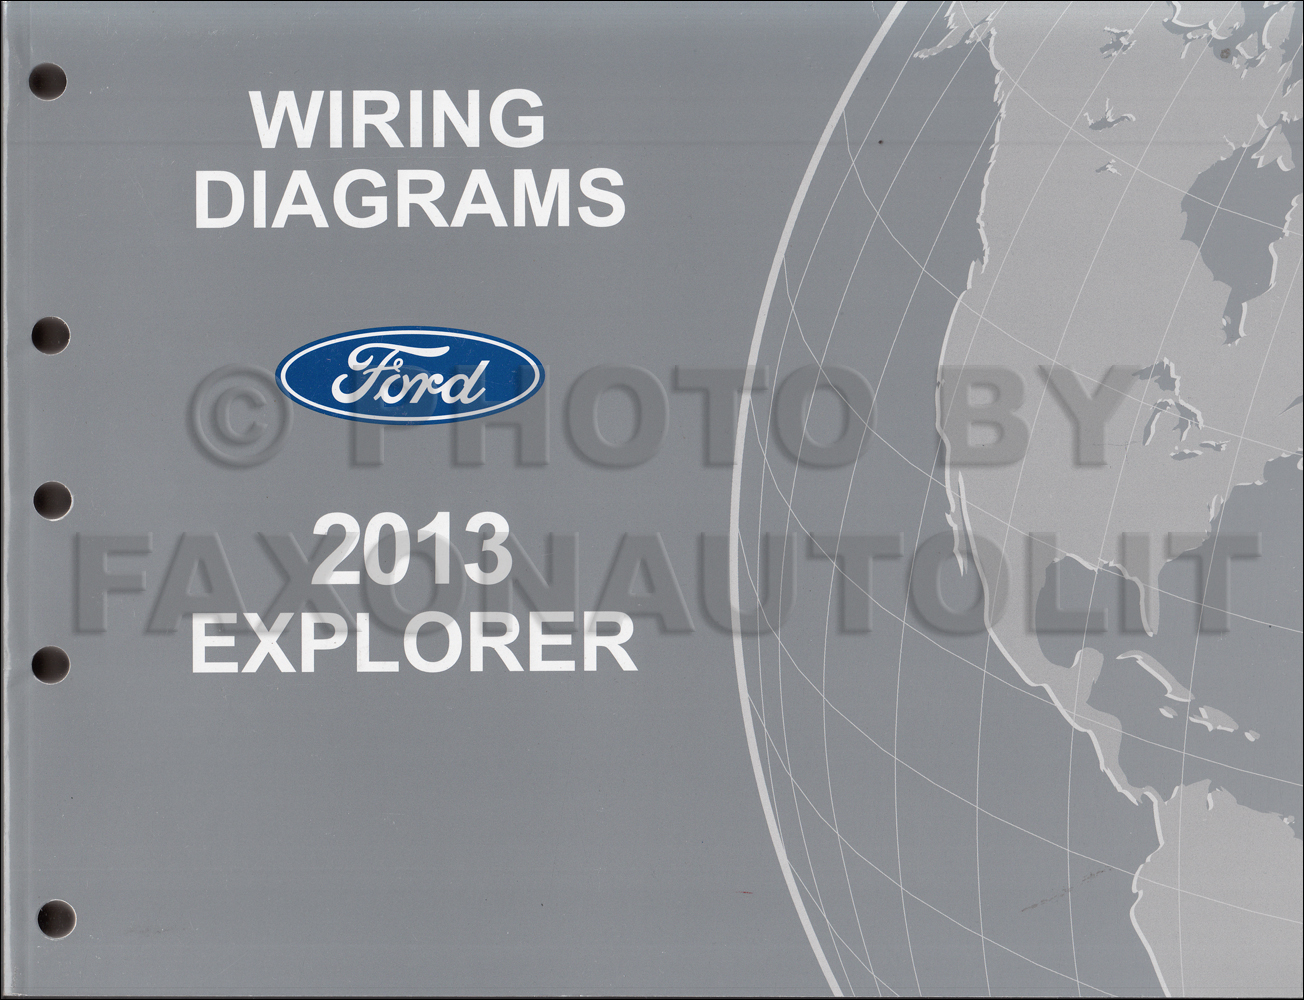 2013 Explorer Wiring Diagram Archive Of Automotive For 2000 Ford Manual Original Rh Faxonautoliterature Com 1992